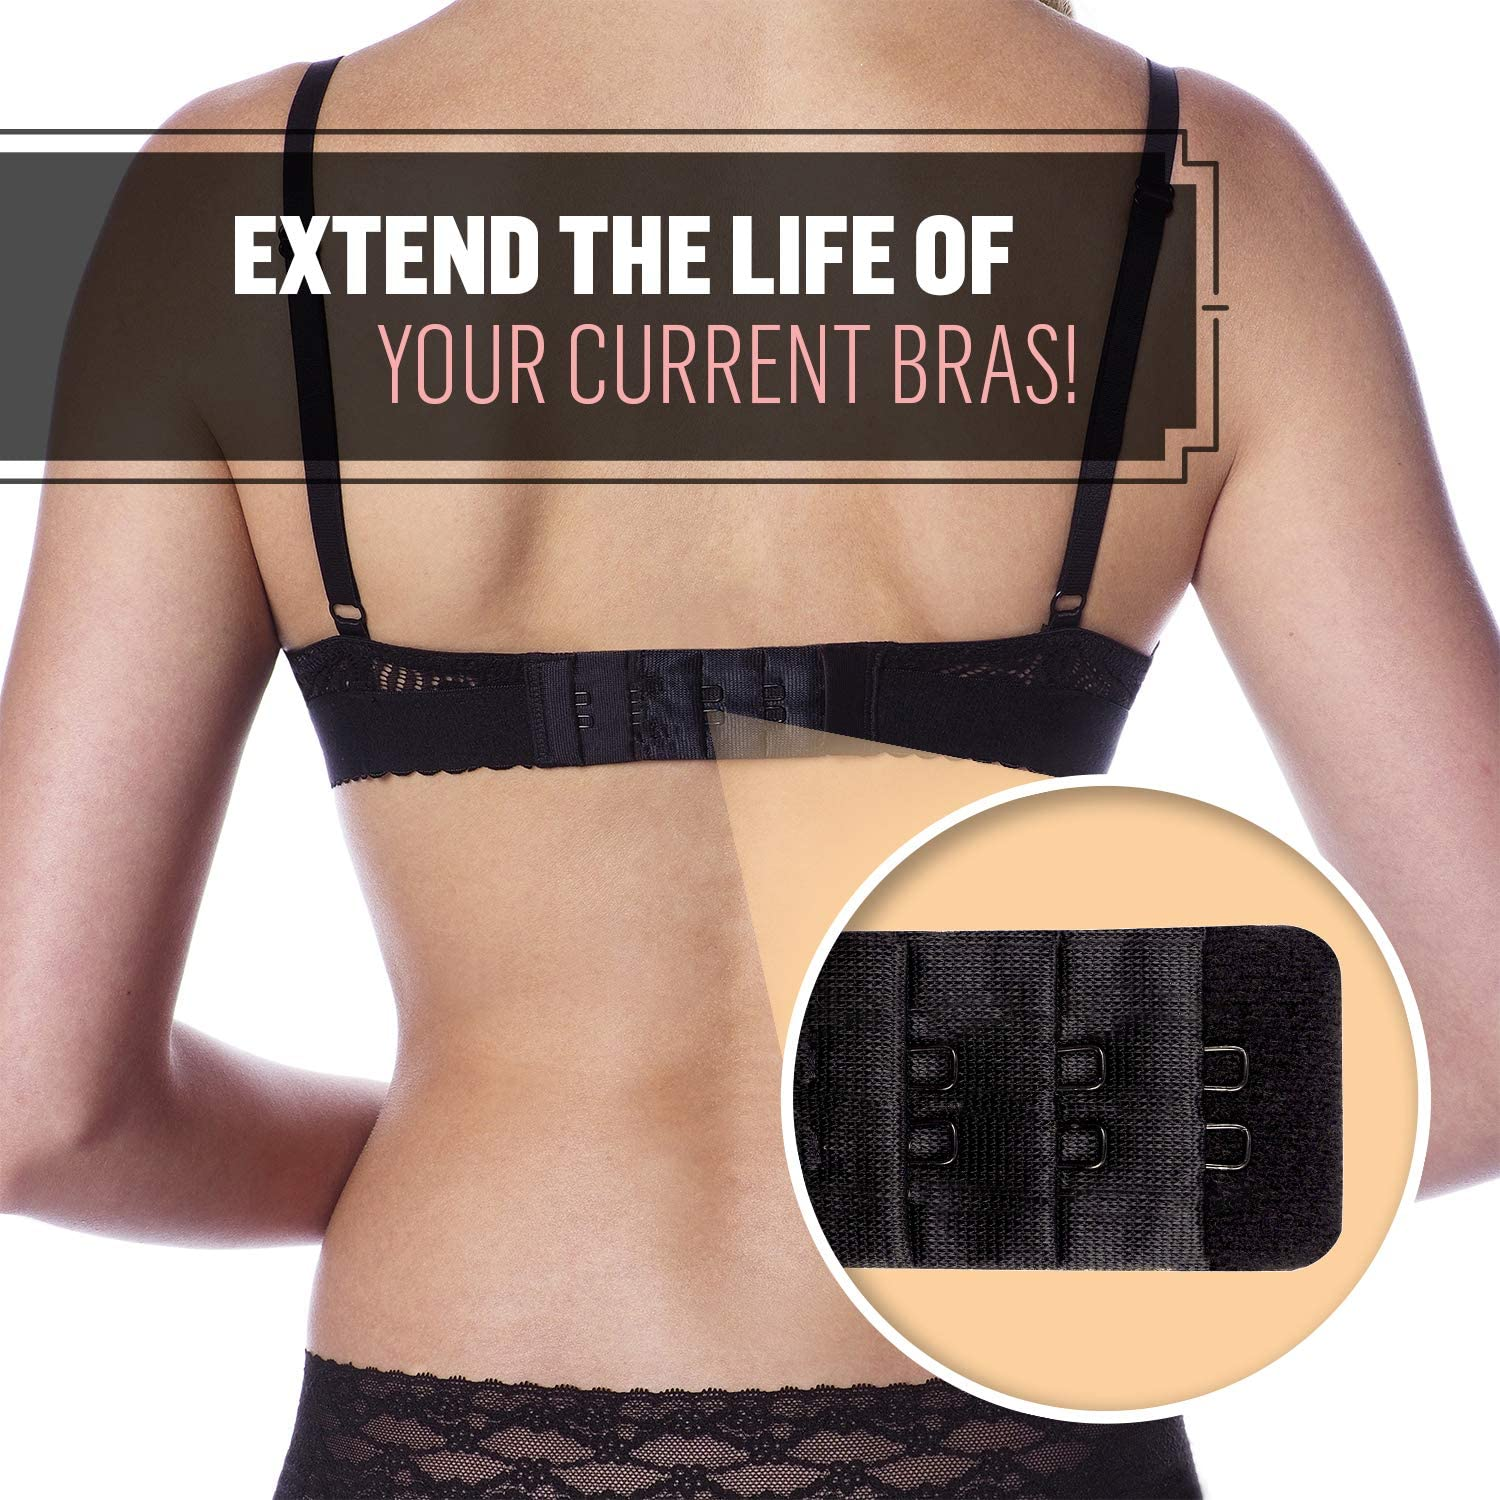 2-pack total 6 Extend-A-Bra 3 in each